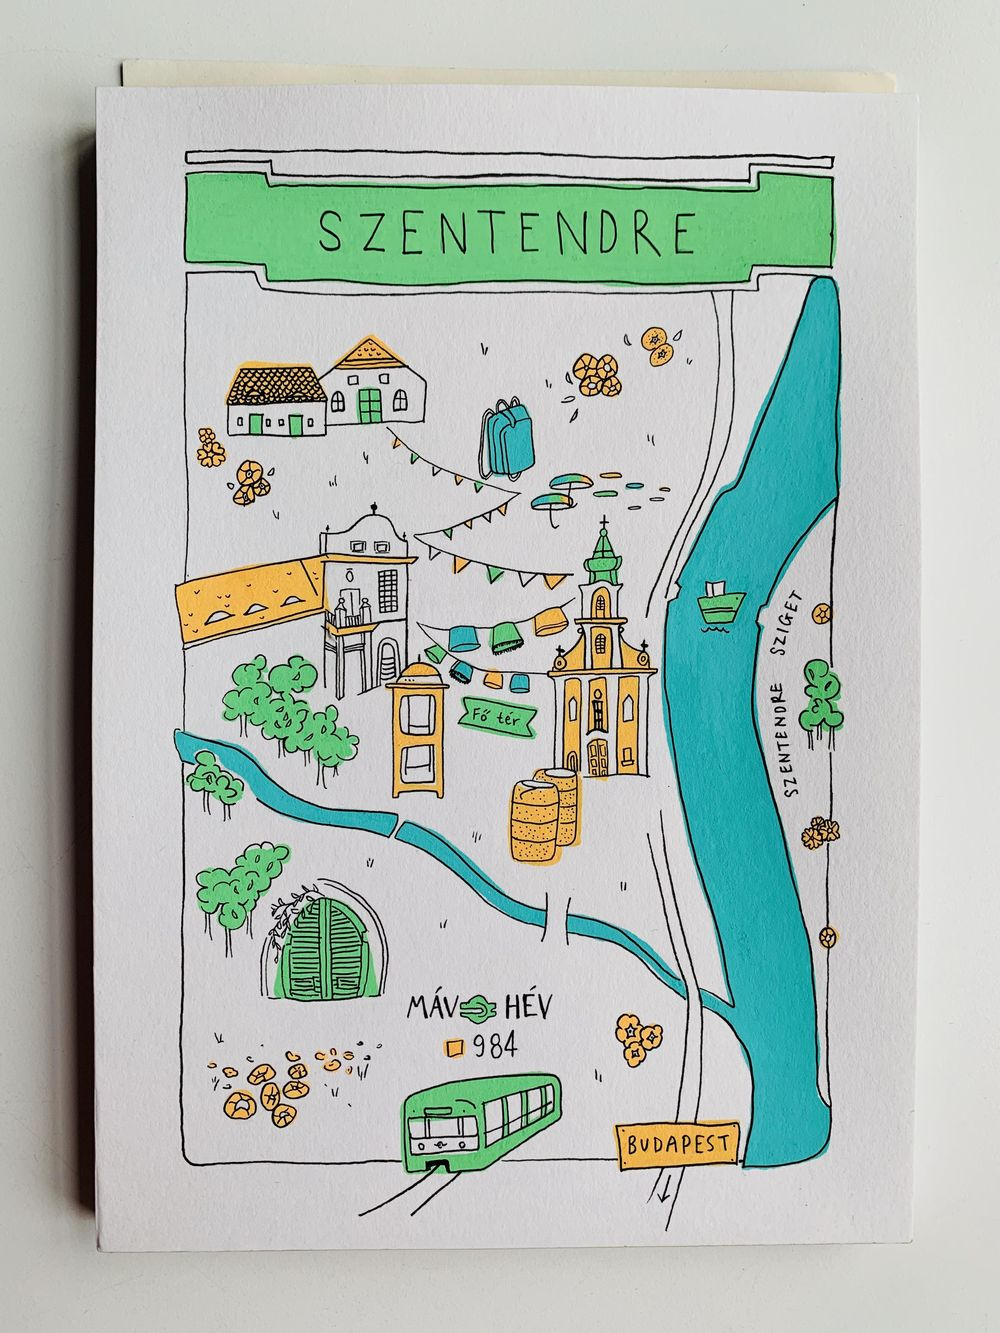 Map of Szentendre, Hungary - image 1 - student project